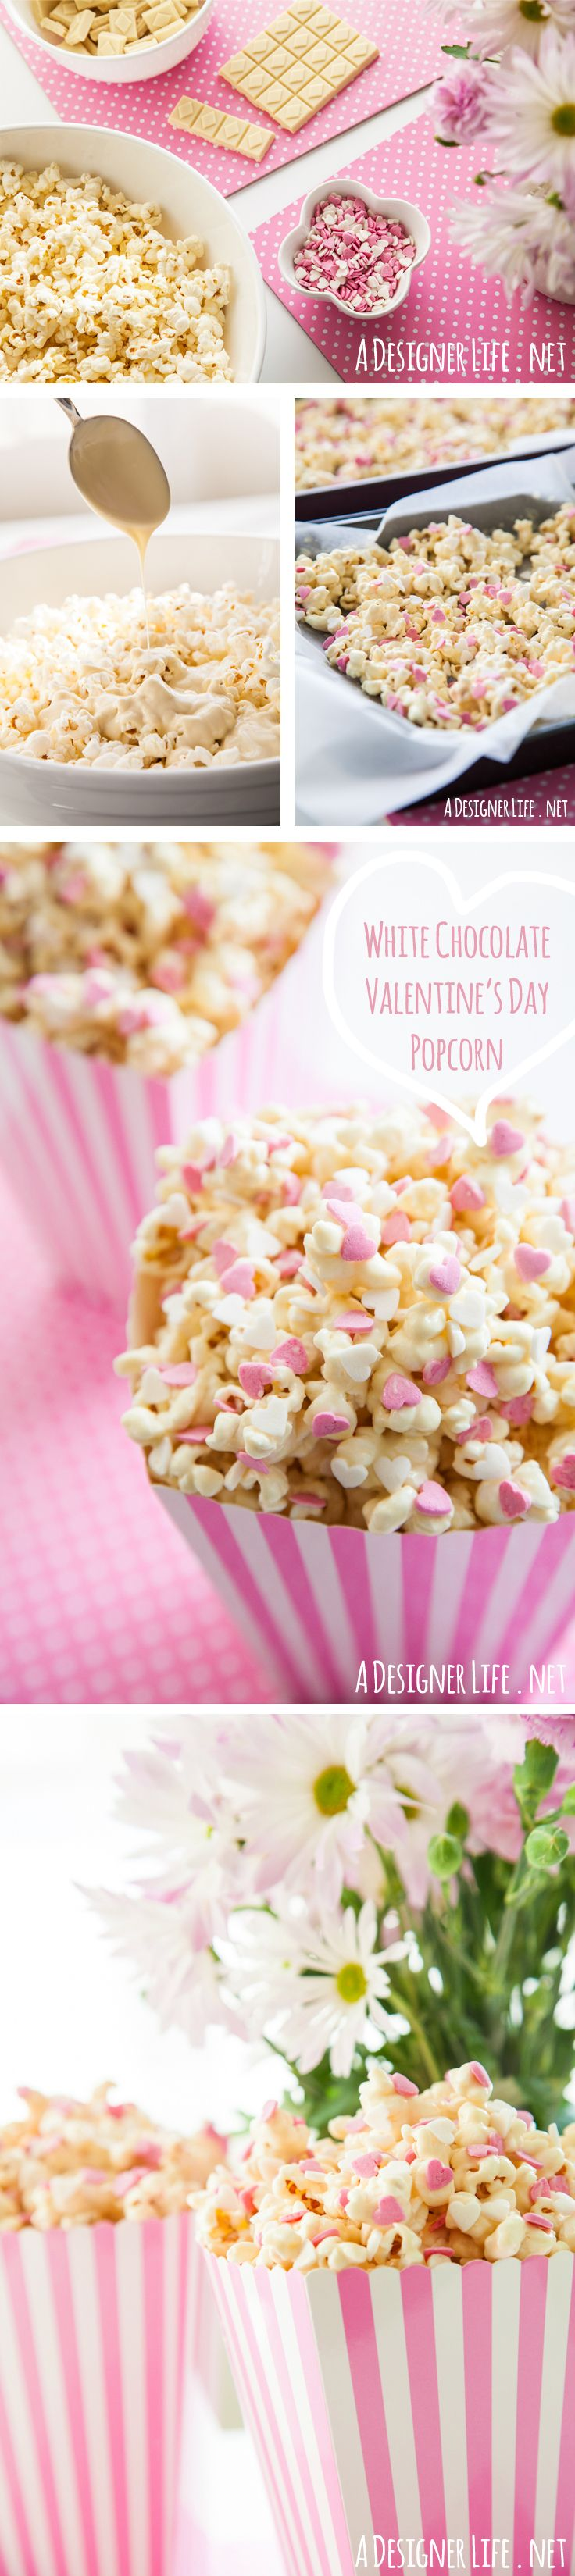 White Chocolate Popcorn with Heart Sprinkles! See it here: http://www.adesignerlife.net/food-design-3-easy-last-minute-valentines-day-recipes/